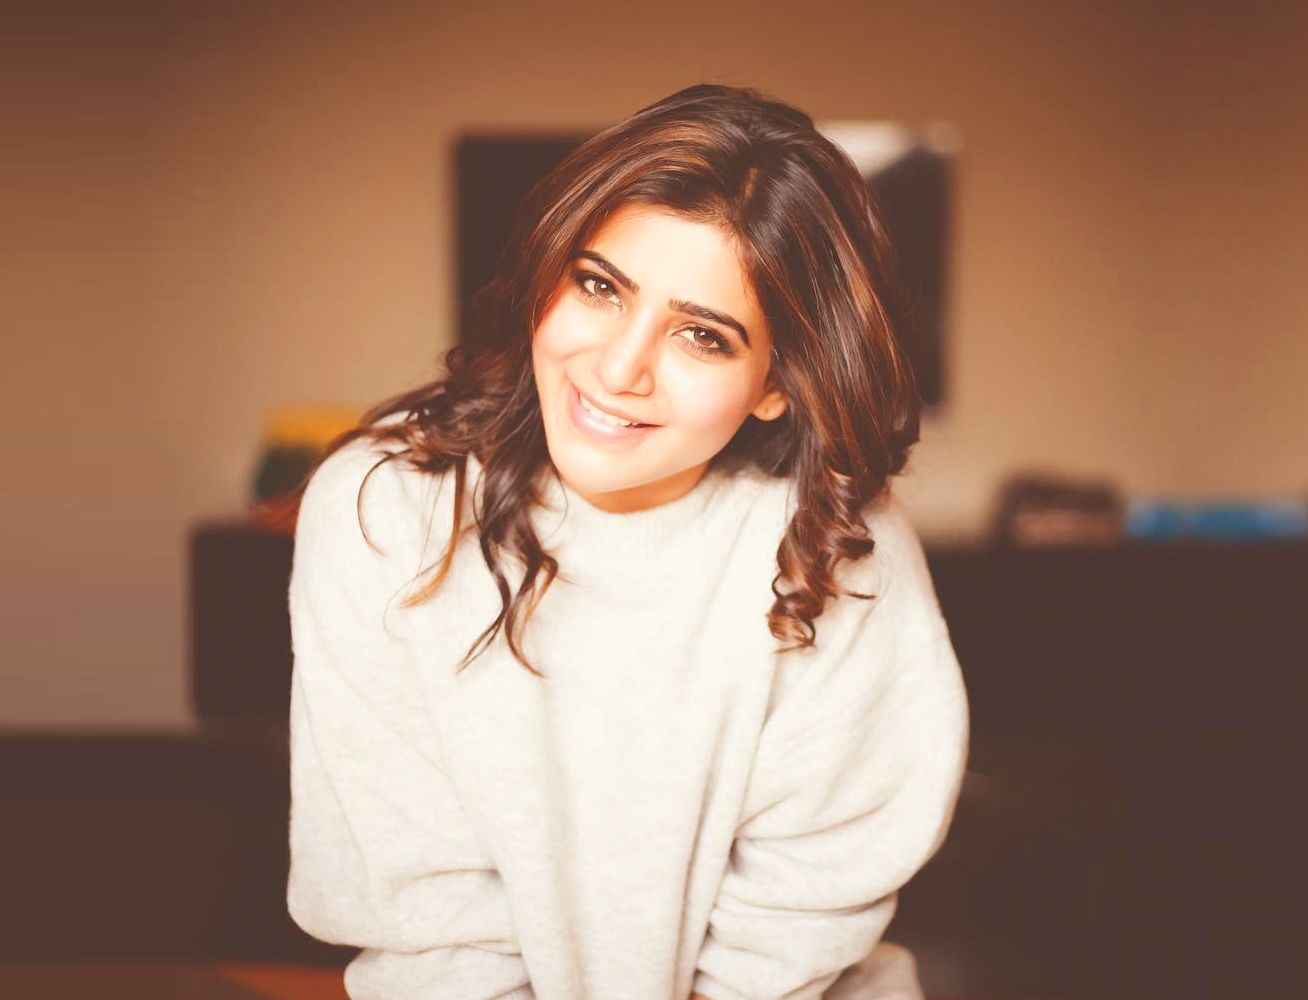 south indian actress wallpapers in hd samantha ruth prabhu hd | 3d